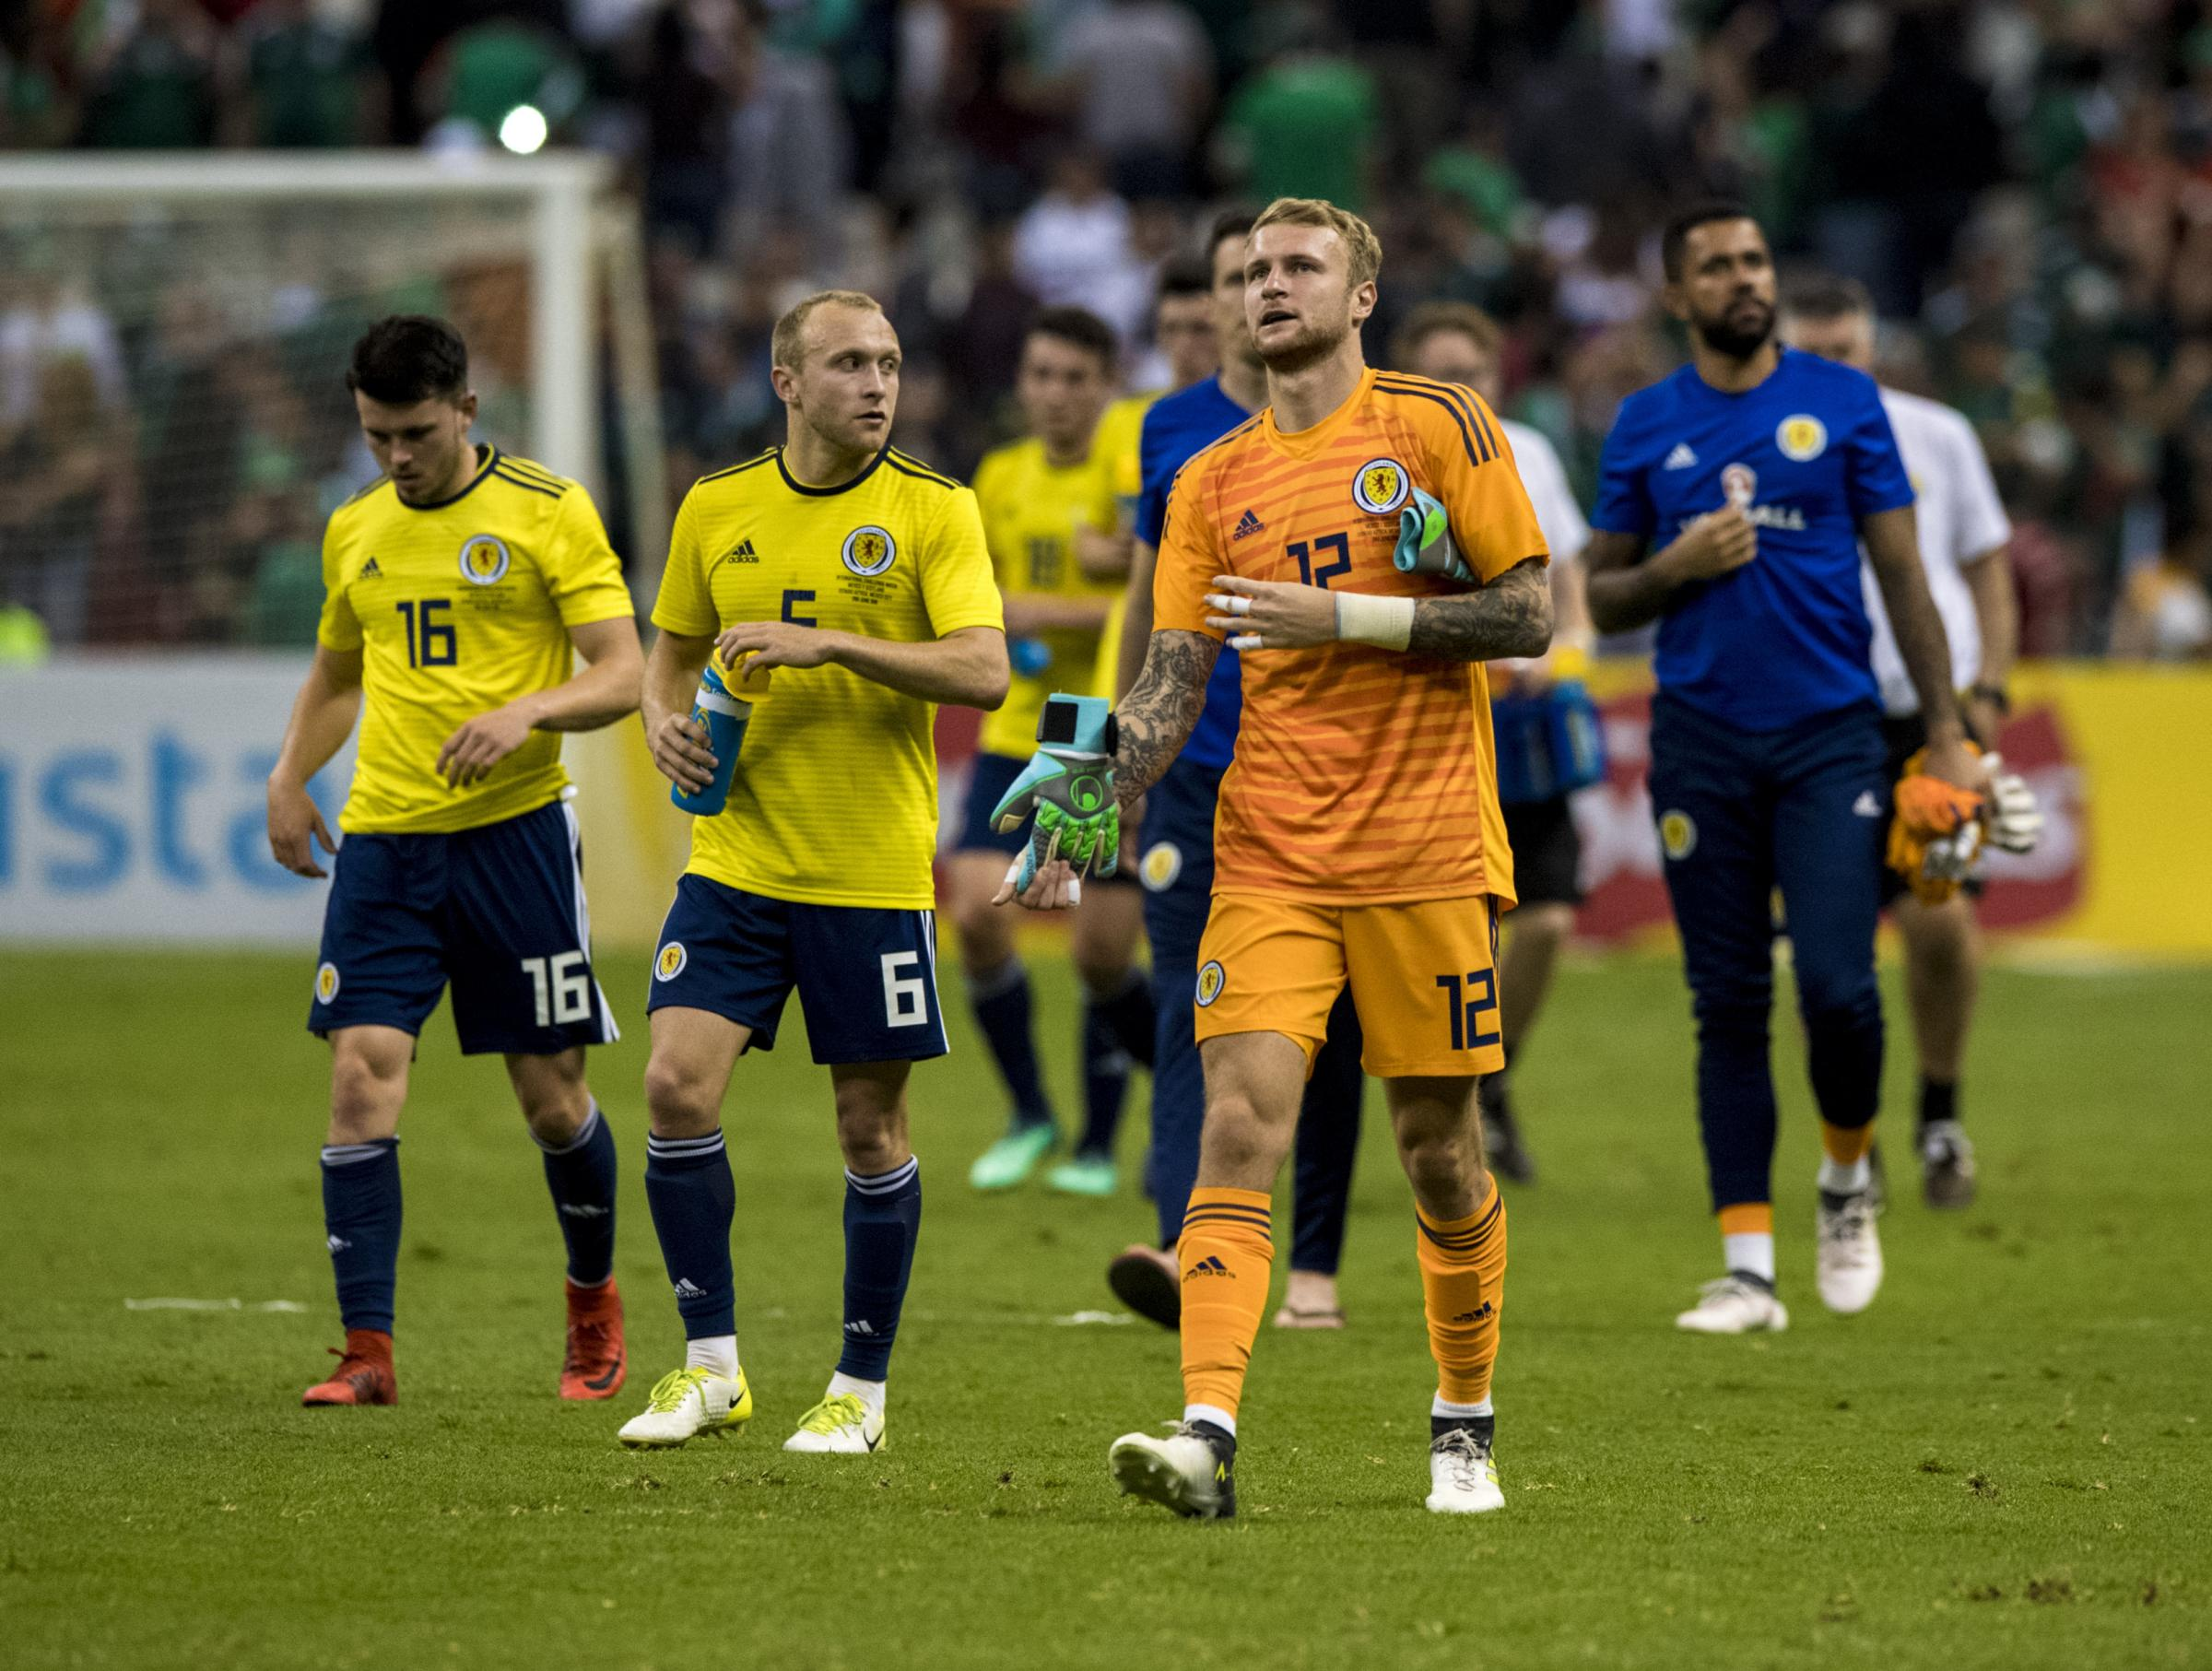 Scott Bain at the end of the match against Mexico